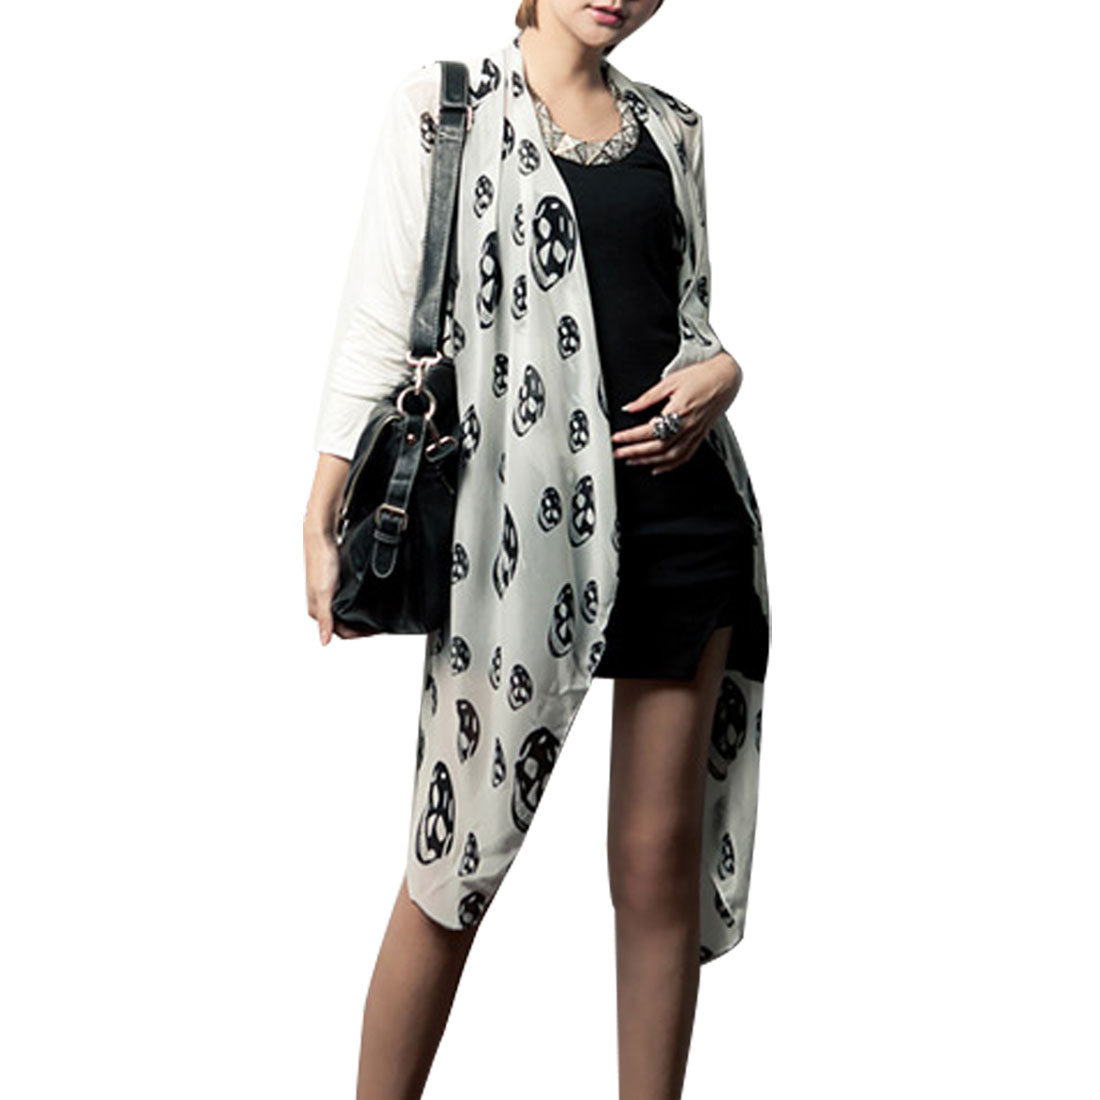 Women White Long Sleeveless Black Skull Head Print Drape Cardigan XS